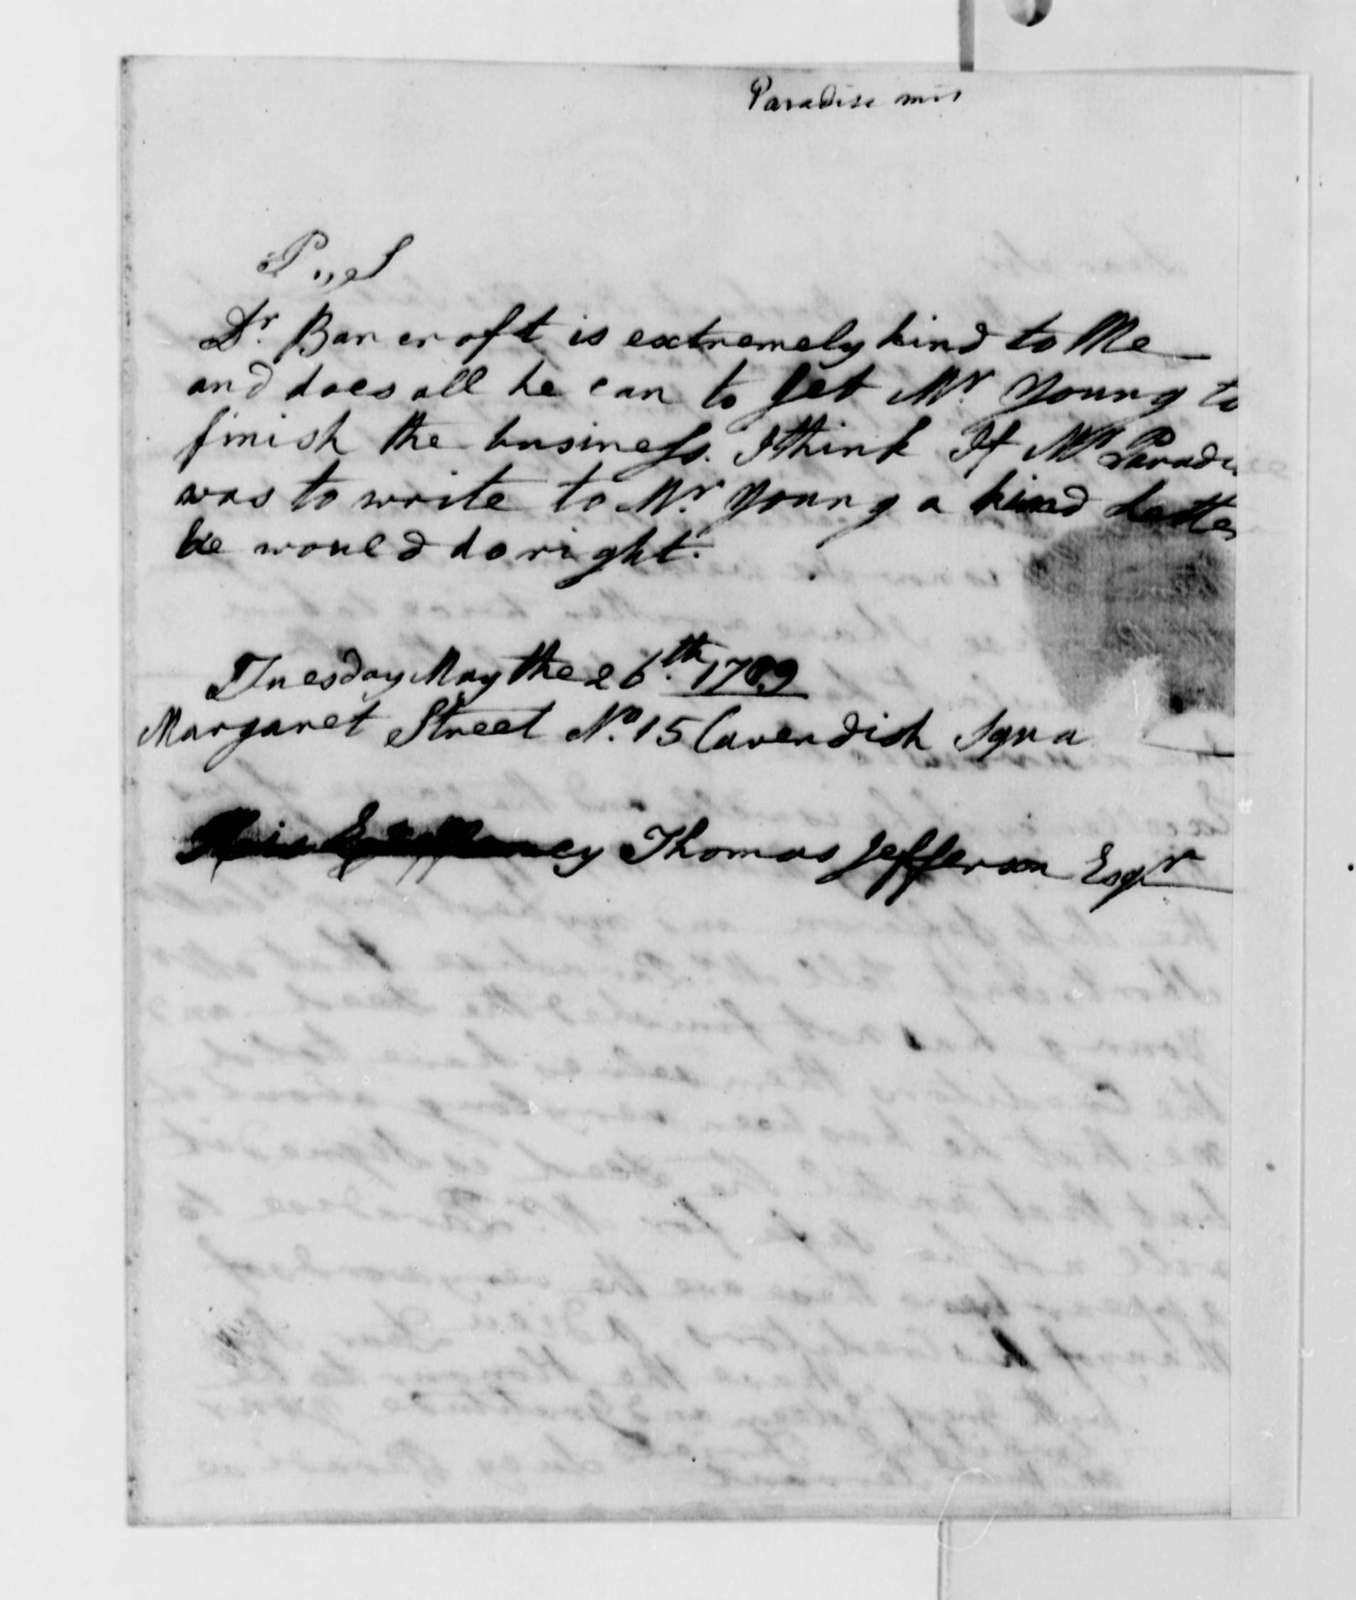 Lucy Ludwell Paradise to Thomas Jefferson, May 26, 1789